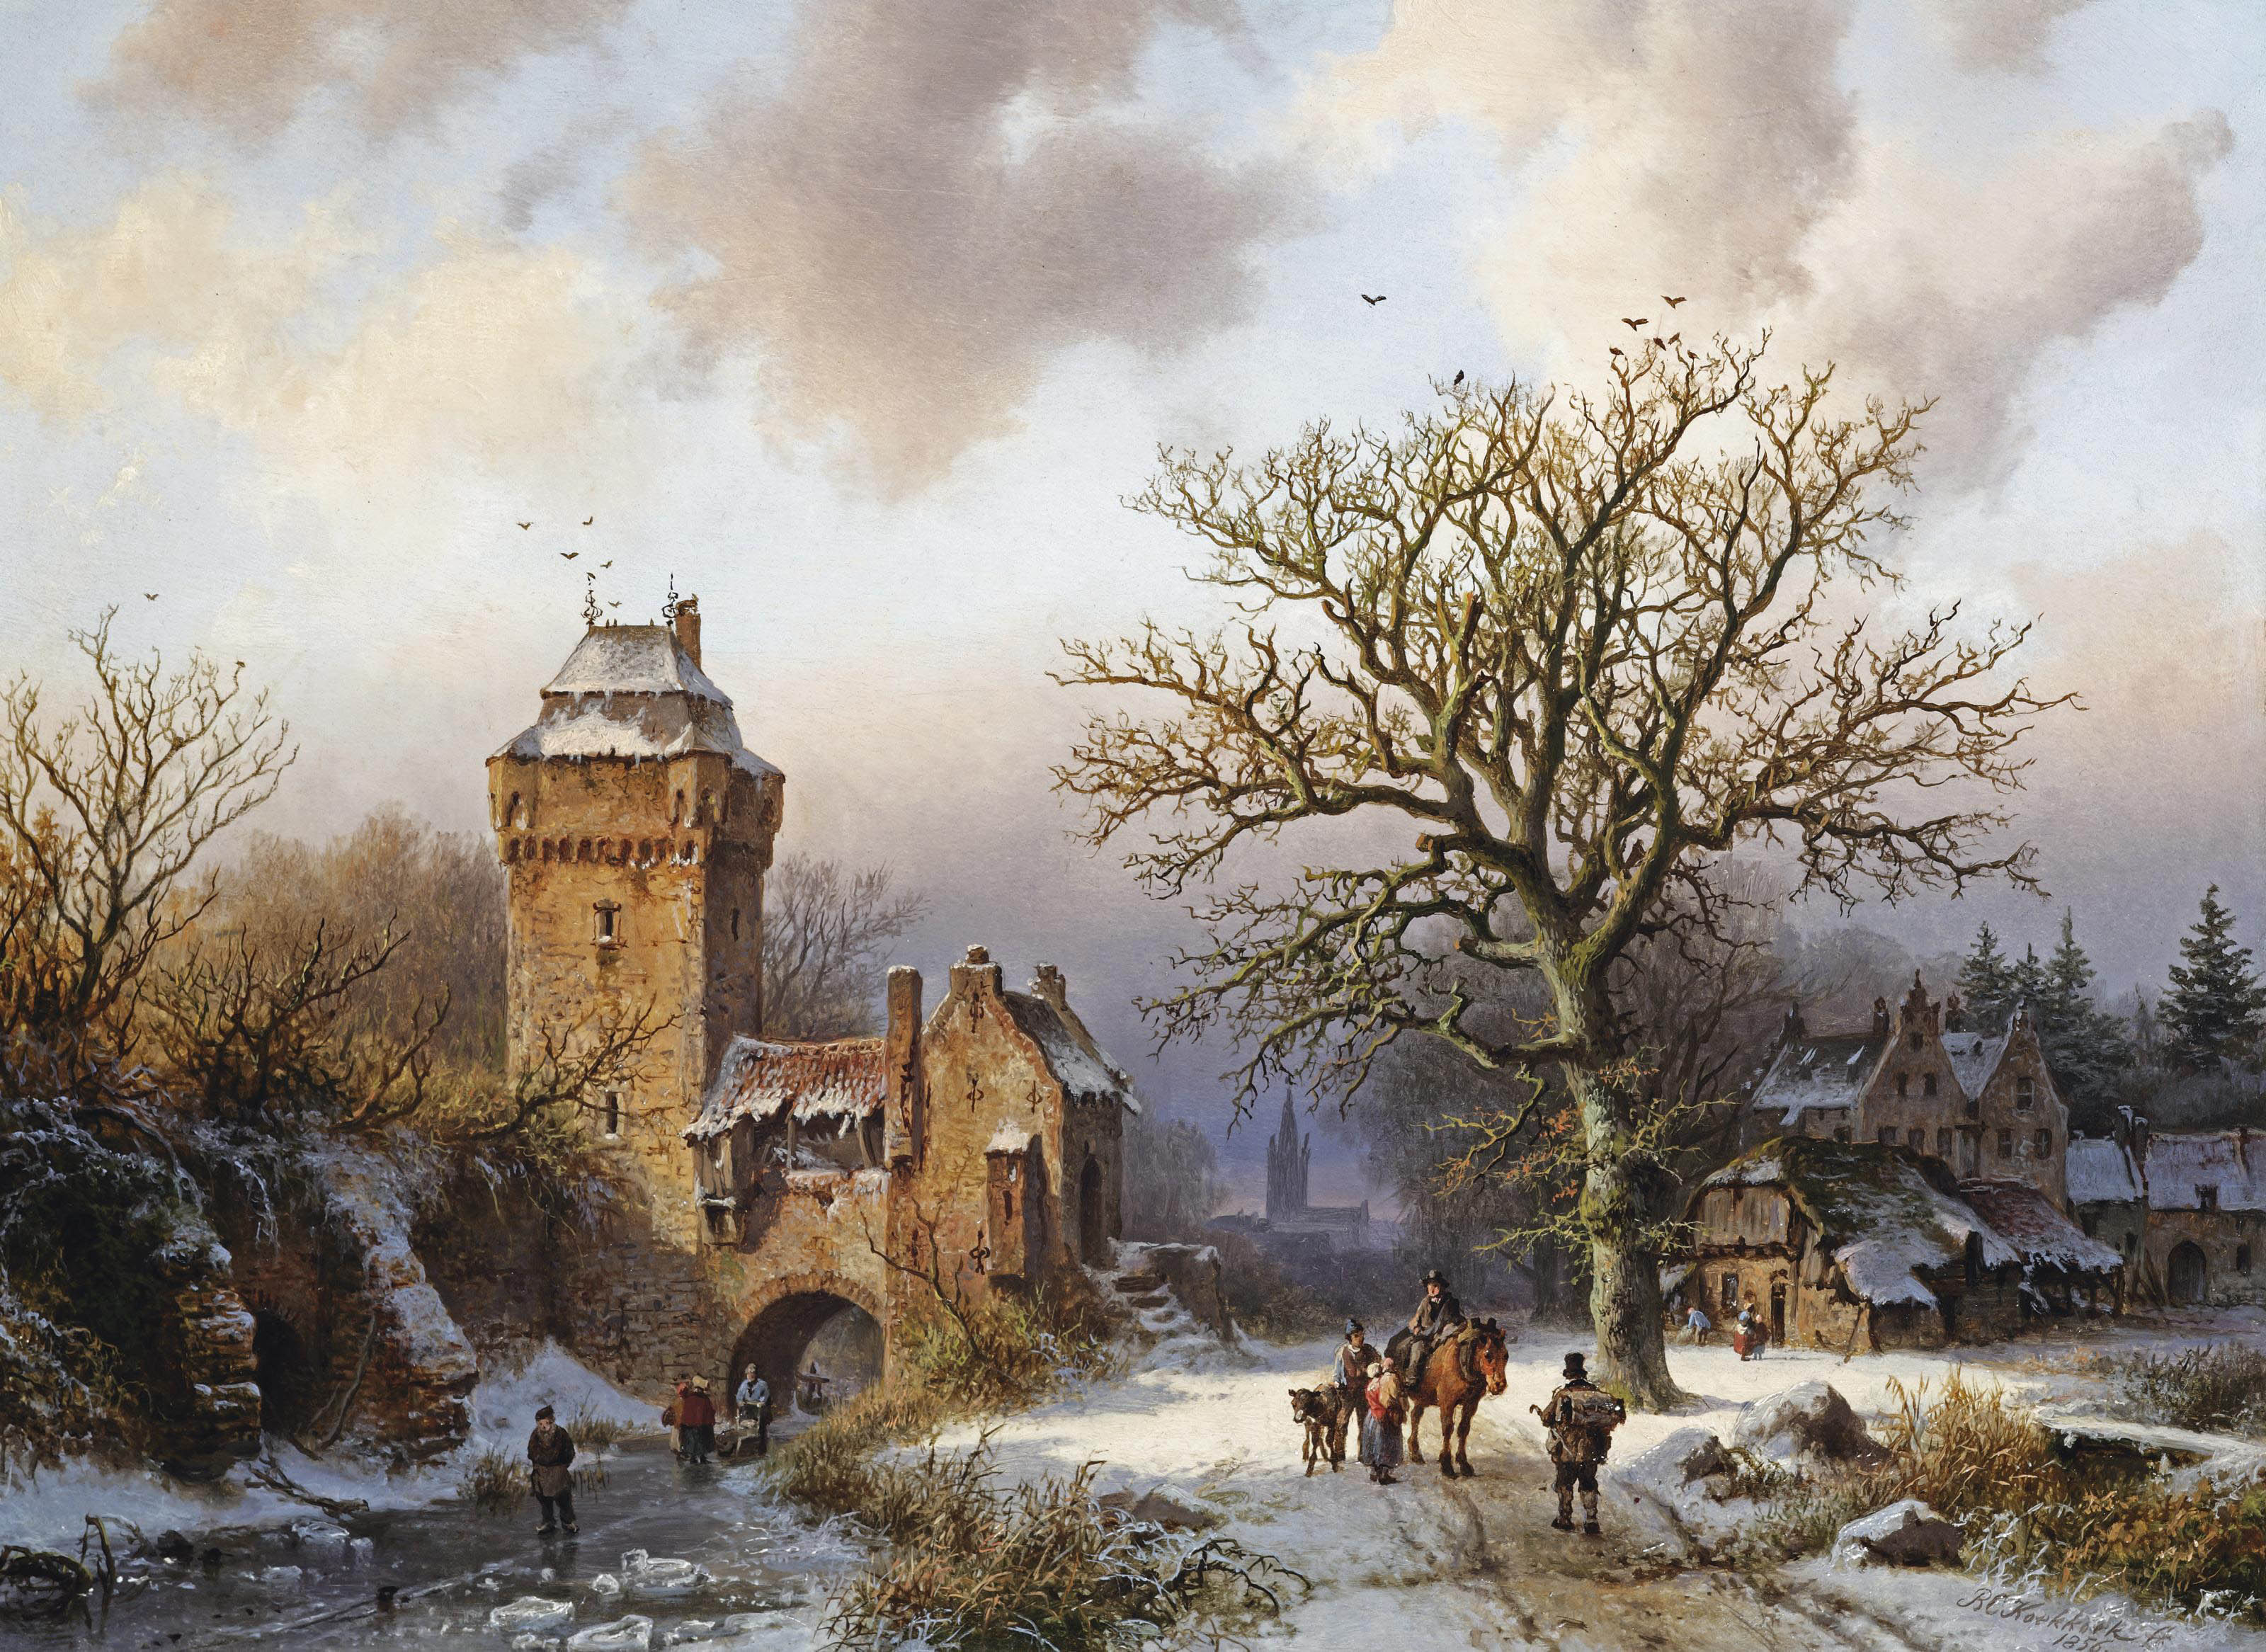 A winter landscape with figures conversing on a snowy path and skaters on a frozen canal at the entrance of a fortified tower